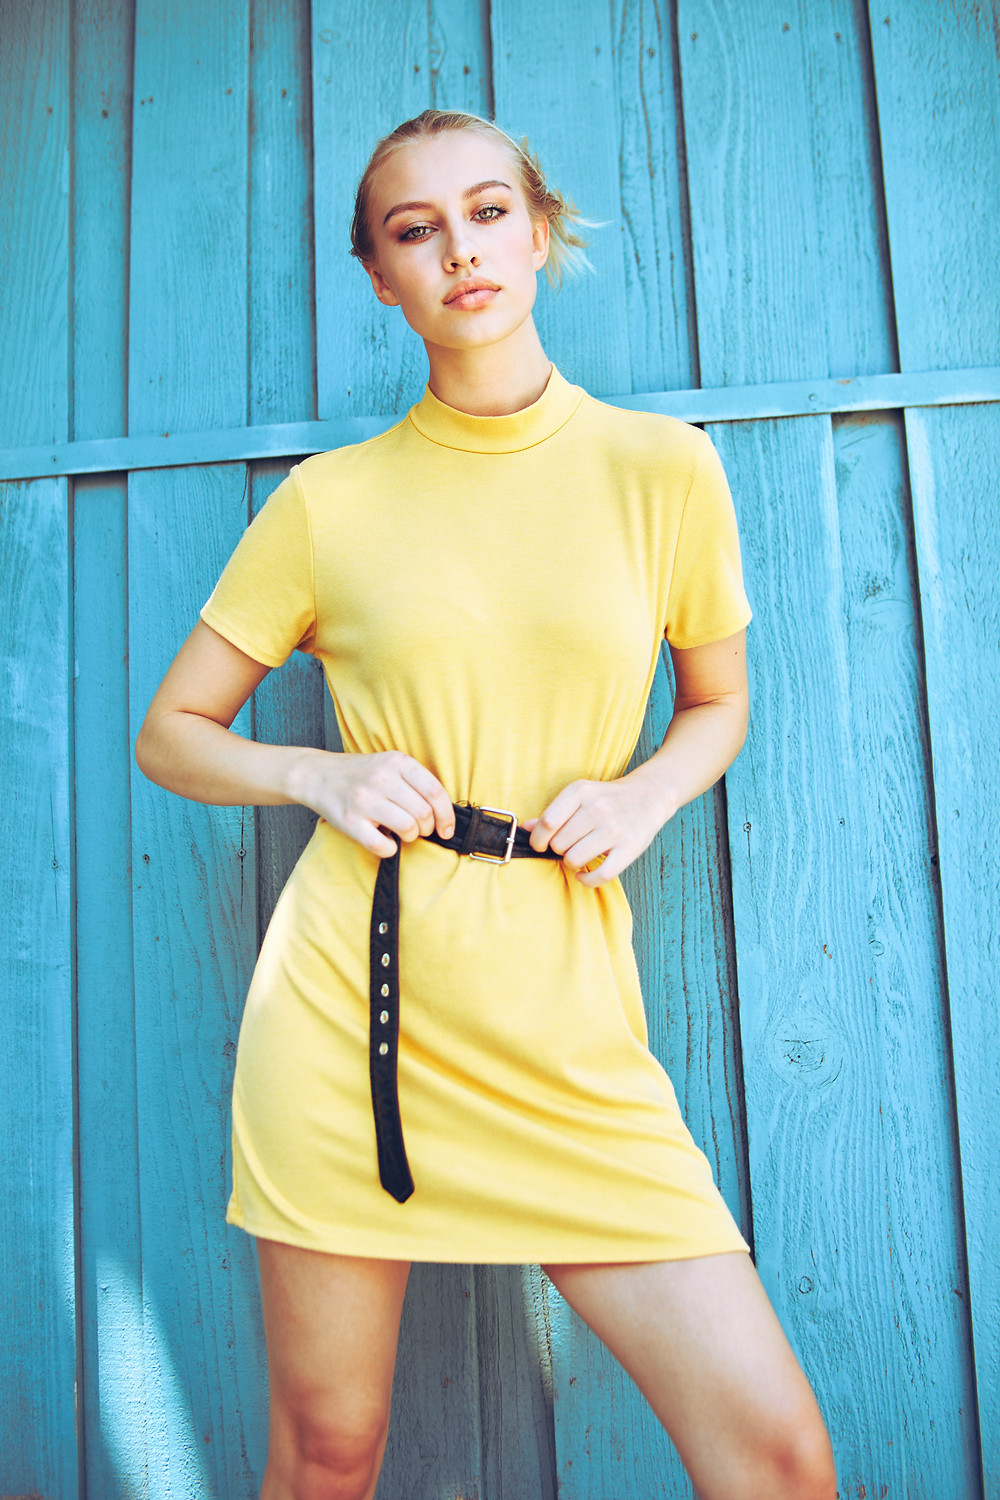 Swedish Model Emelie MacInnes wears a yellow dress in front of a blue wall with a black belt, striking blue eyes, and blonde hair up in a bun by Los Angeles fashion photographer Patrick Patton.